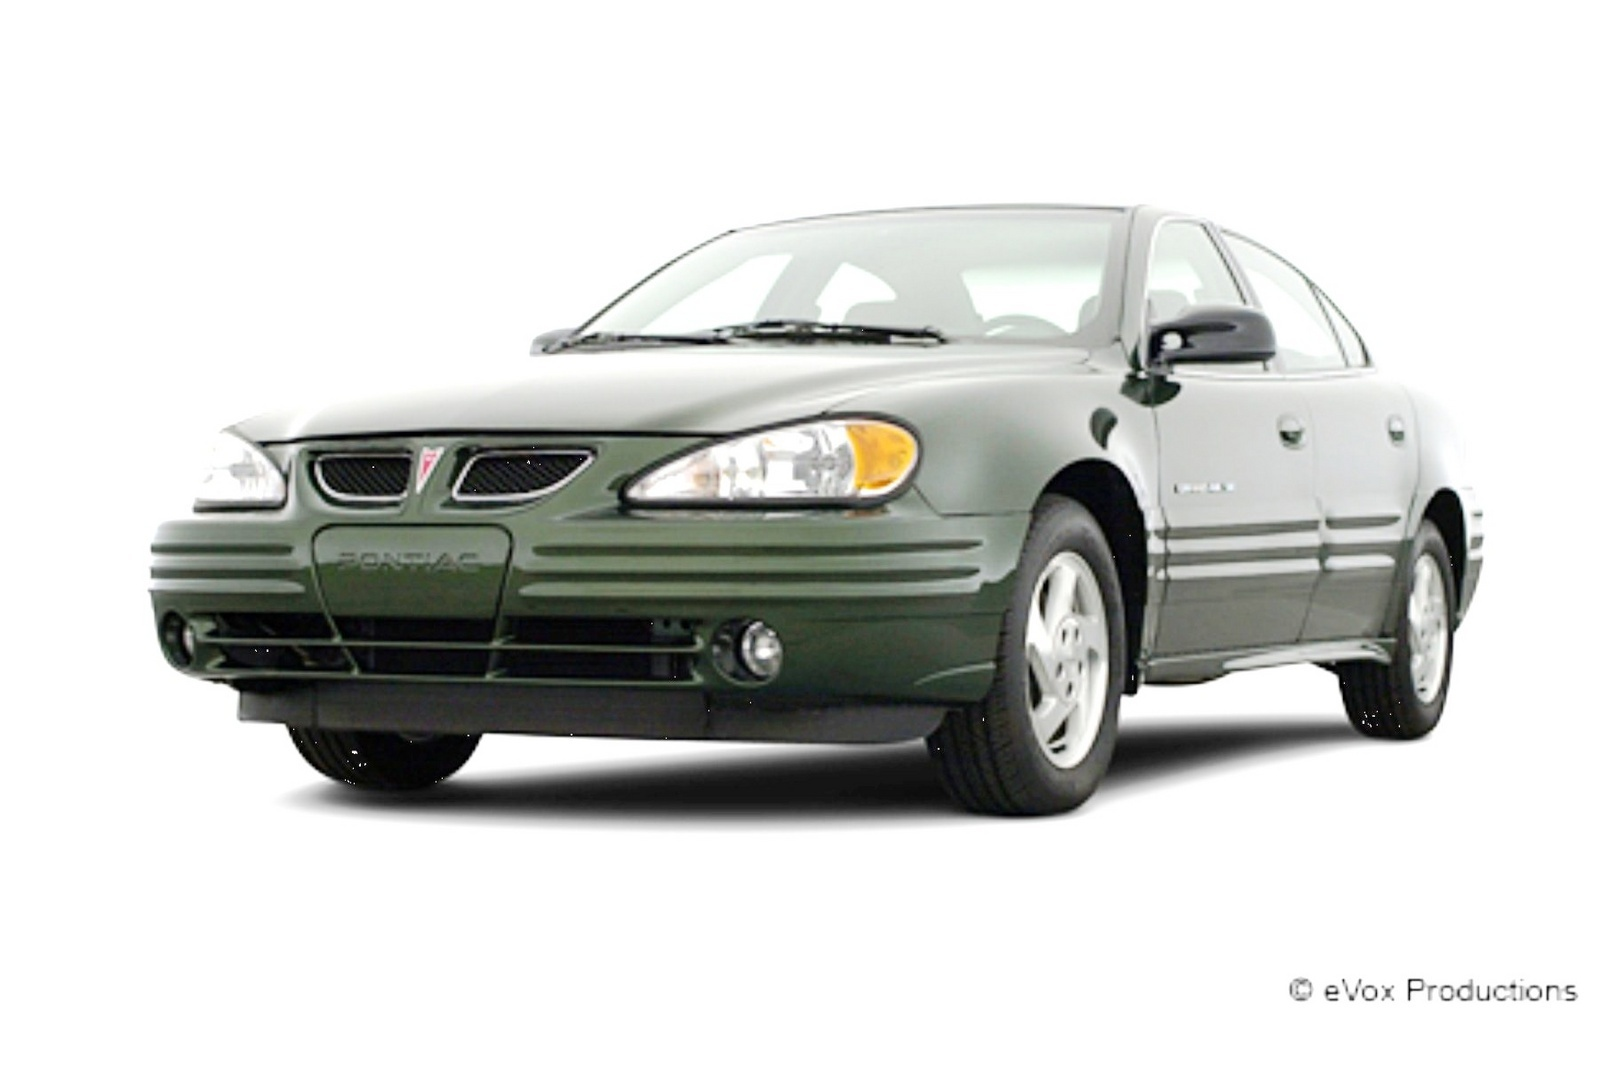 pontiac grand am questions looking for front air dam. Black Bedroom Furniture Sets. Home Design Ideas